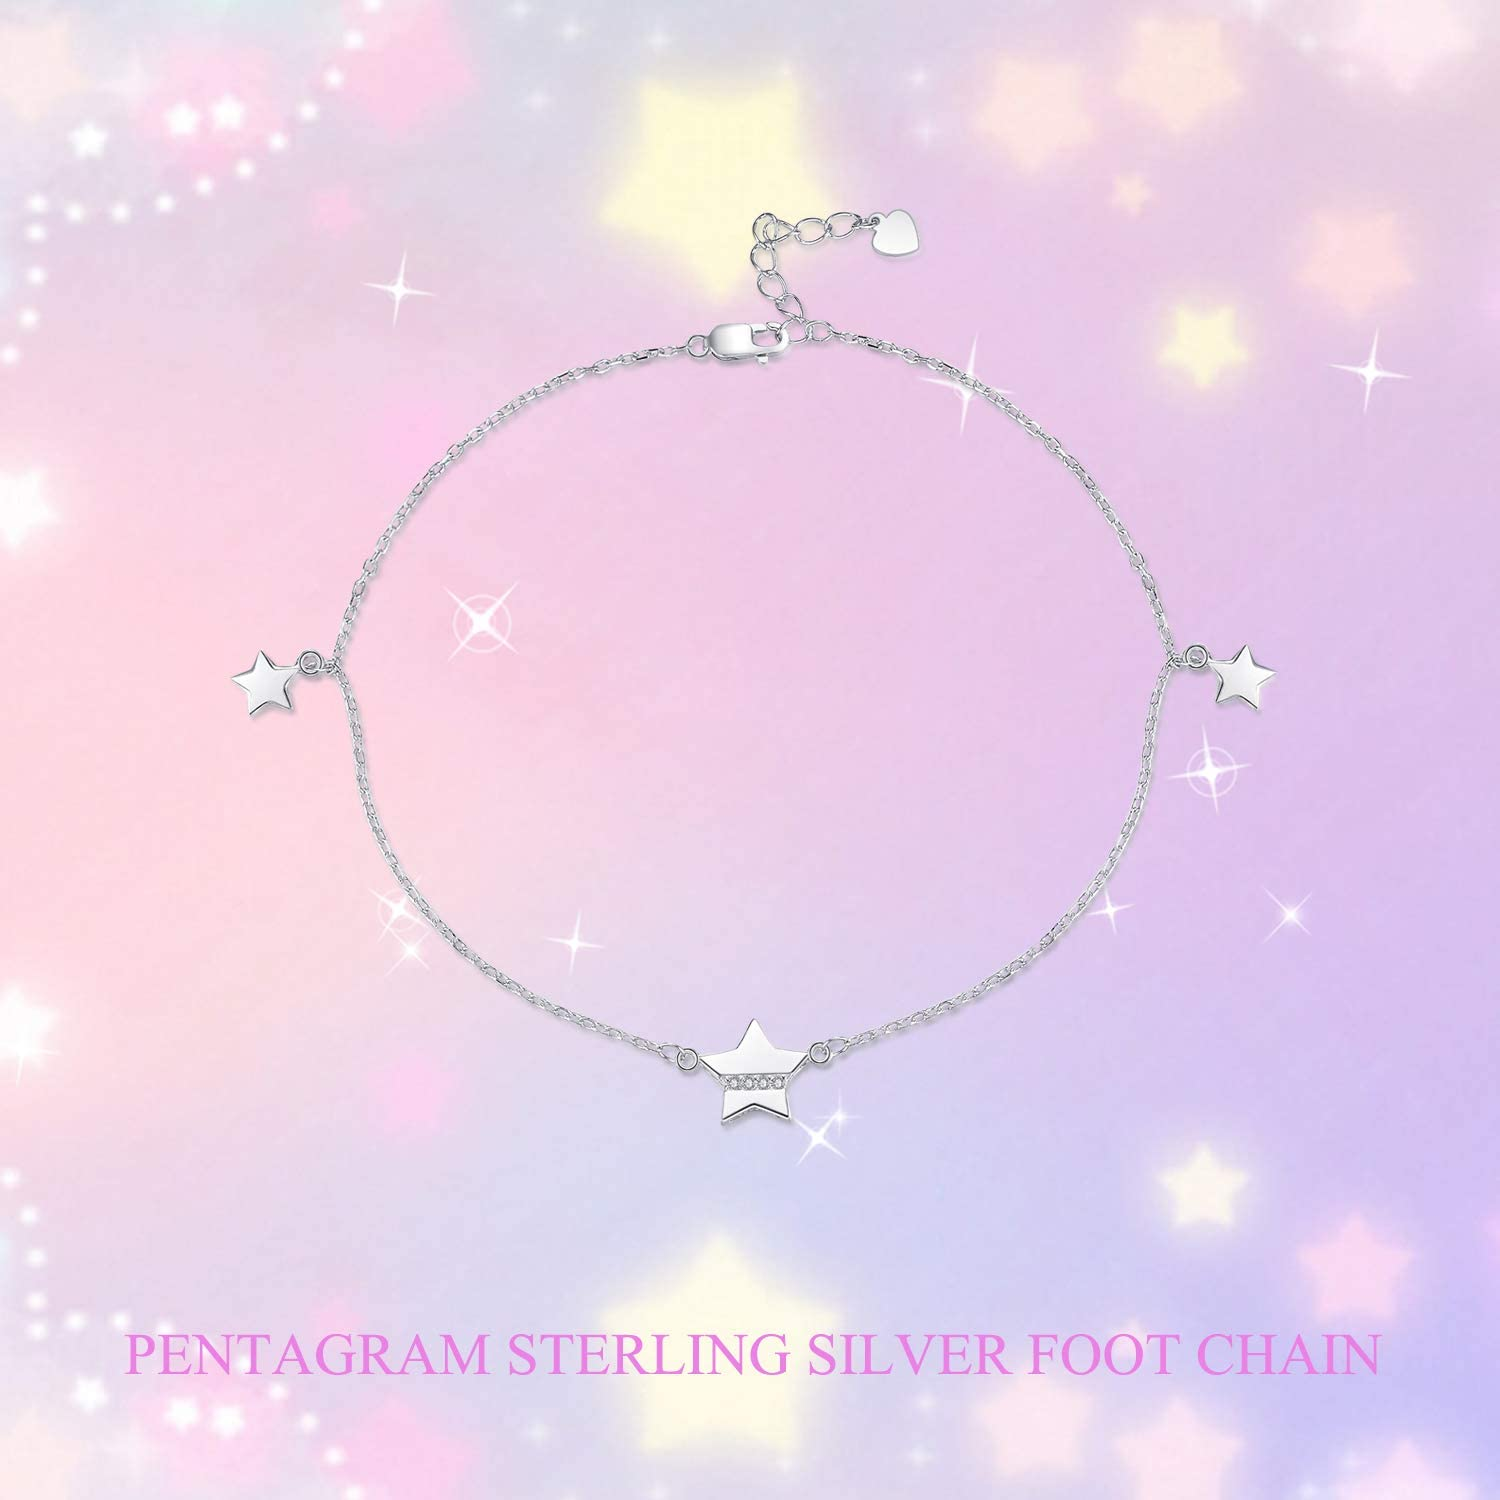 POPLYKE Sterling Silver Daisy Flower Anklet and Star Anklet for Women Teens Girls